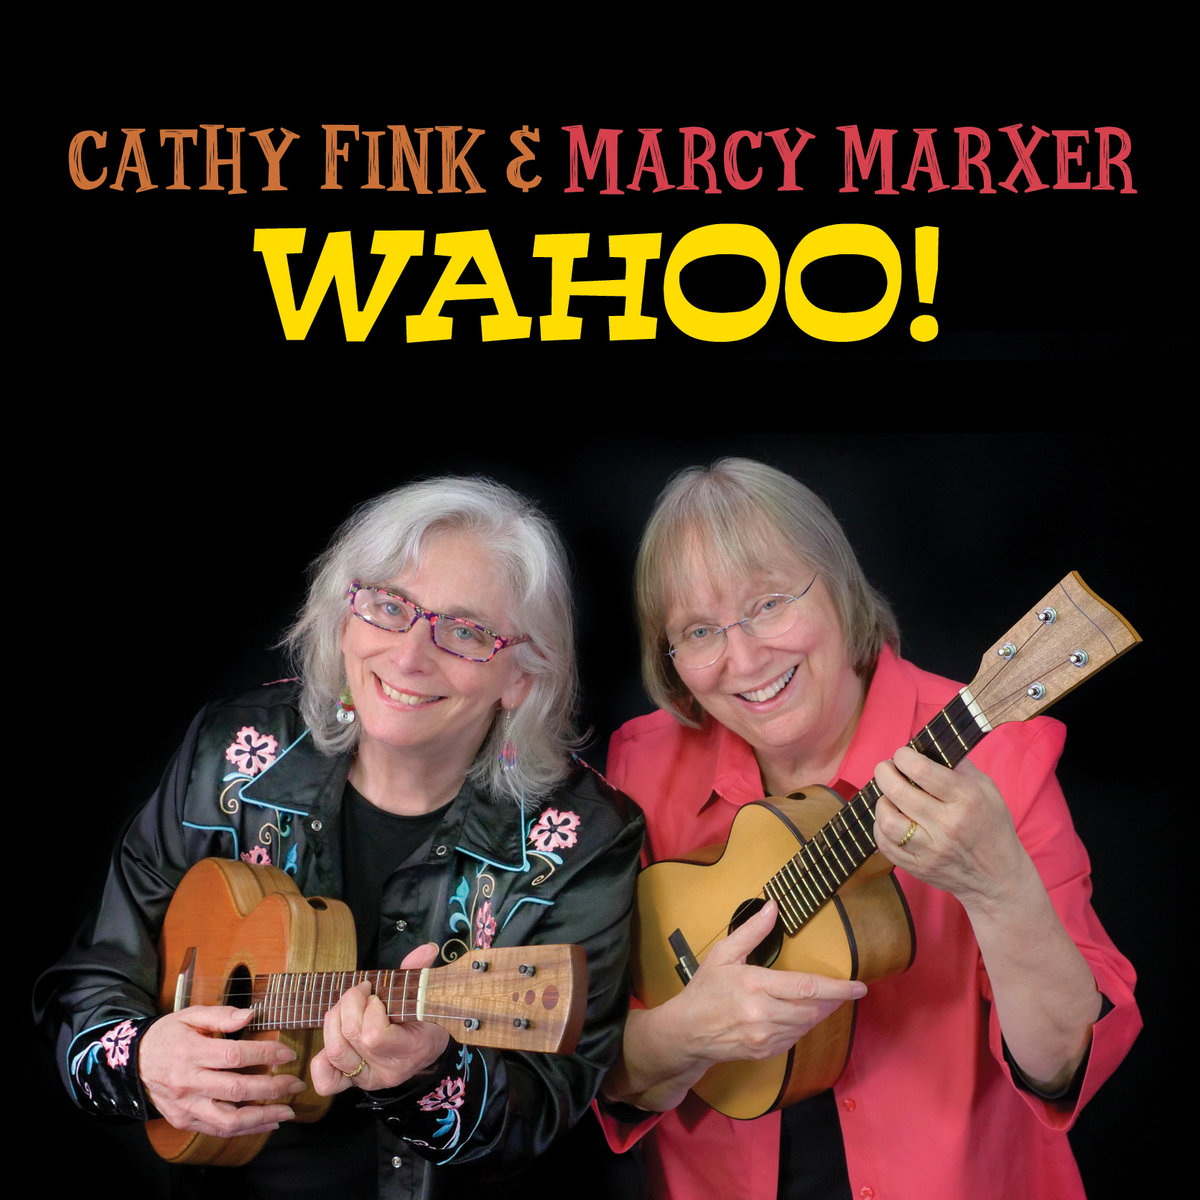 WAHOO! Ukulele CD Cover image